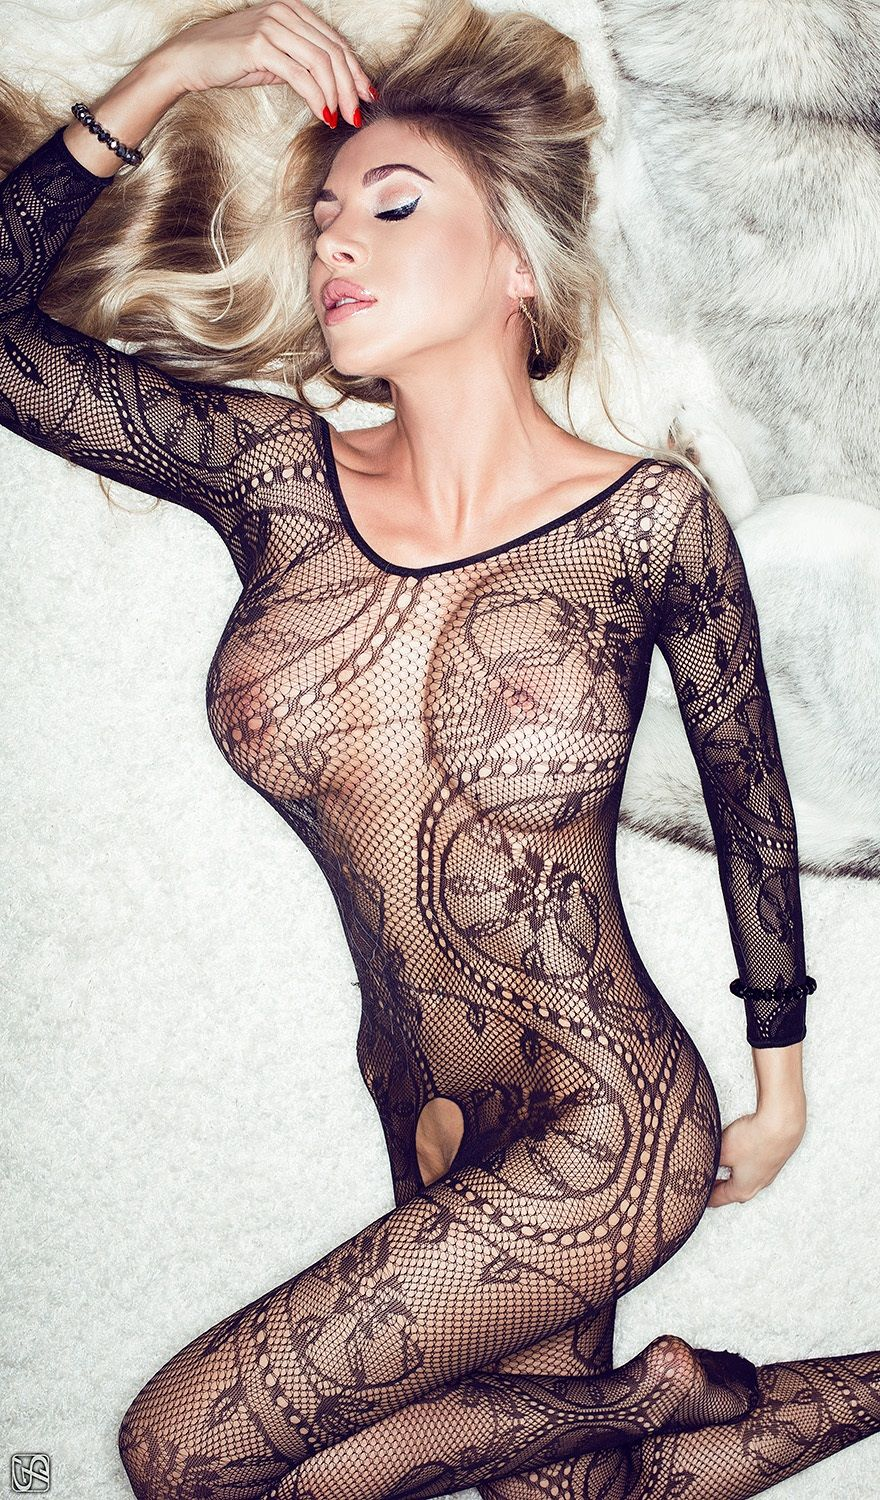 pinchile on sexy babes | pinterest | lingerie, fishnet and